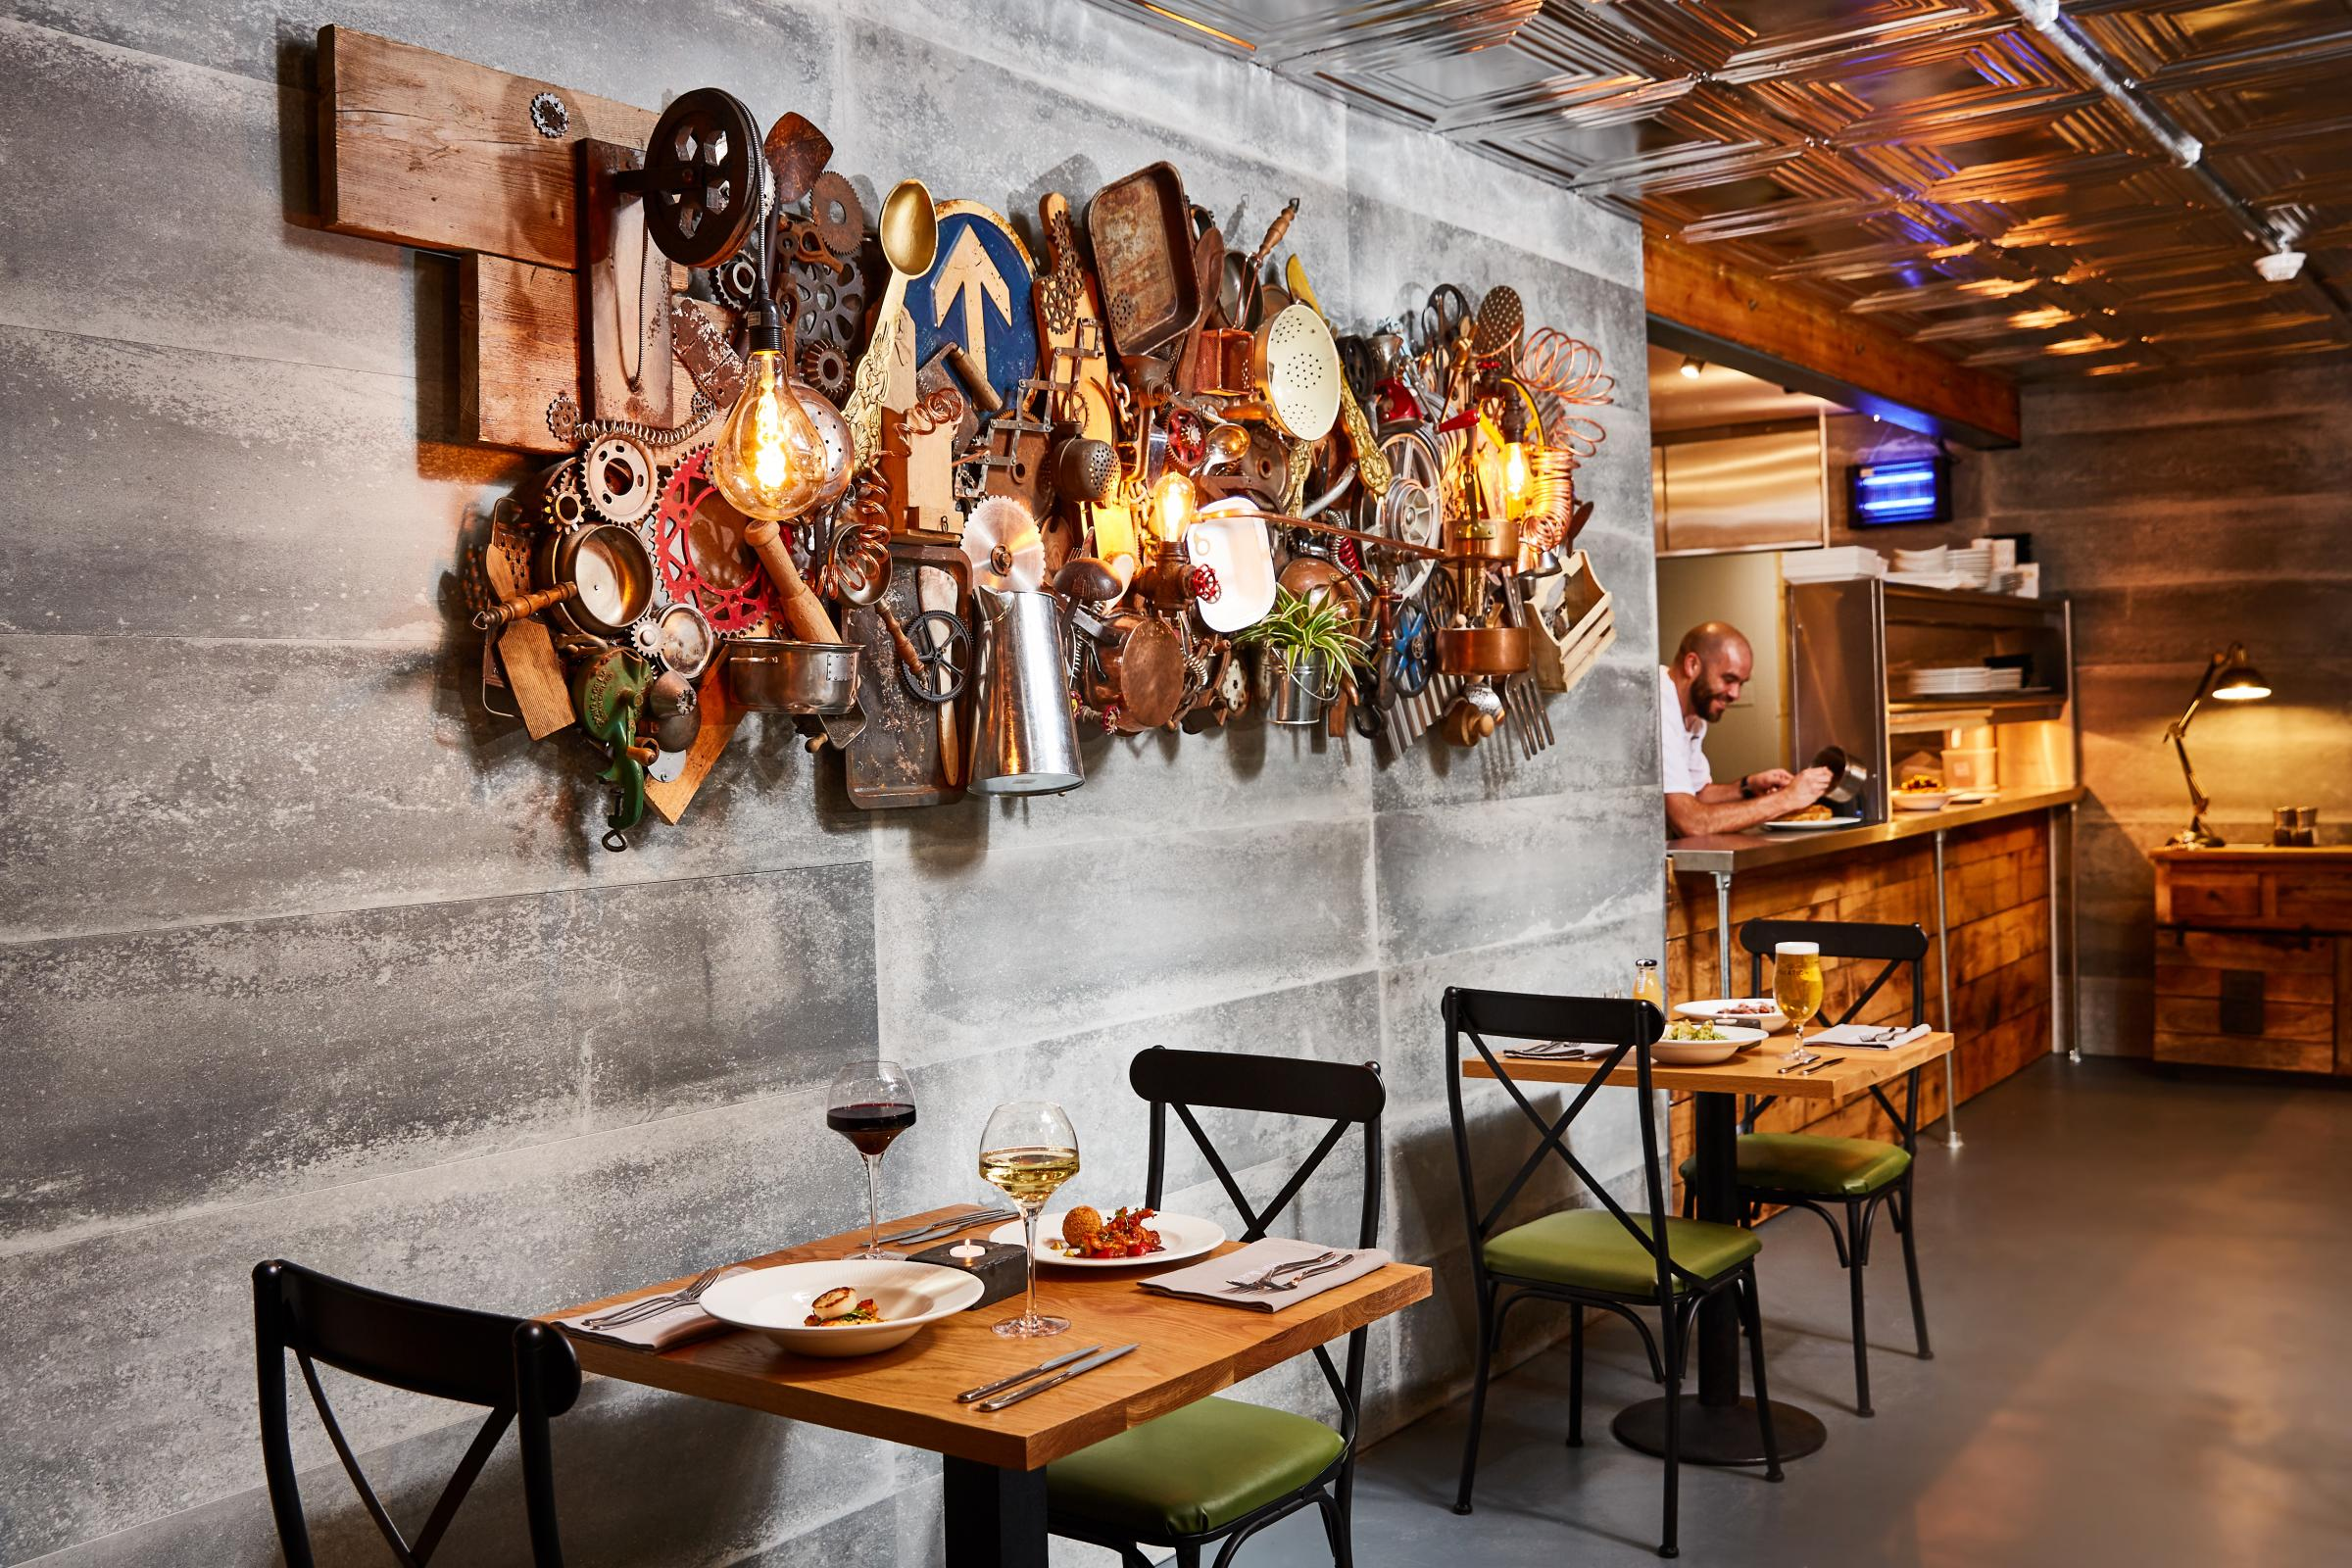 FOOD: Taste of the North with an urban rustic vibe